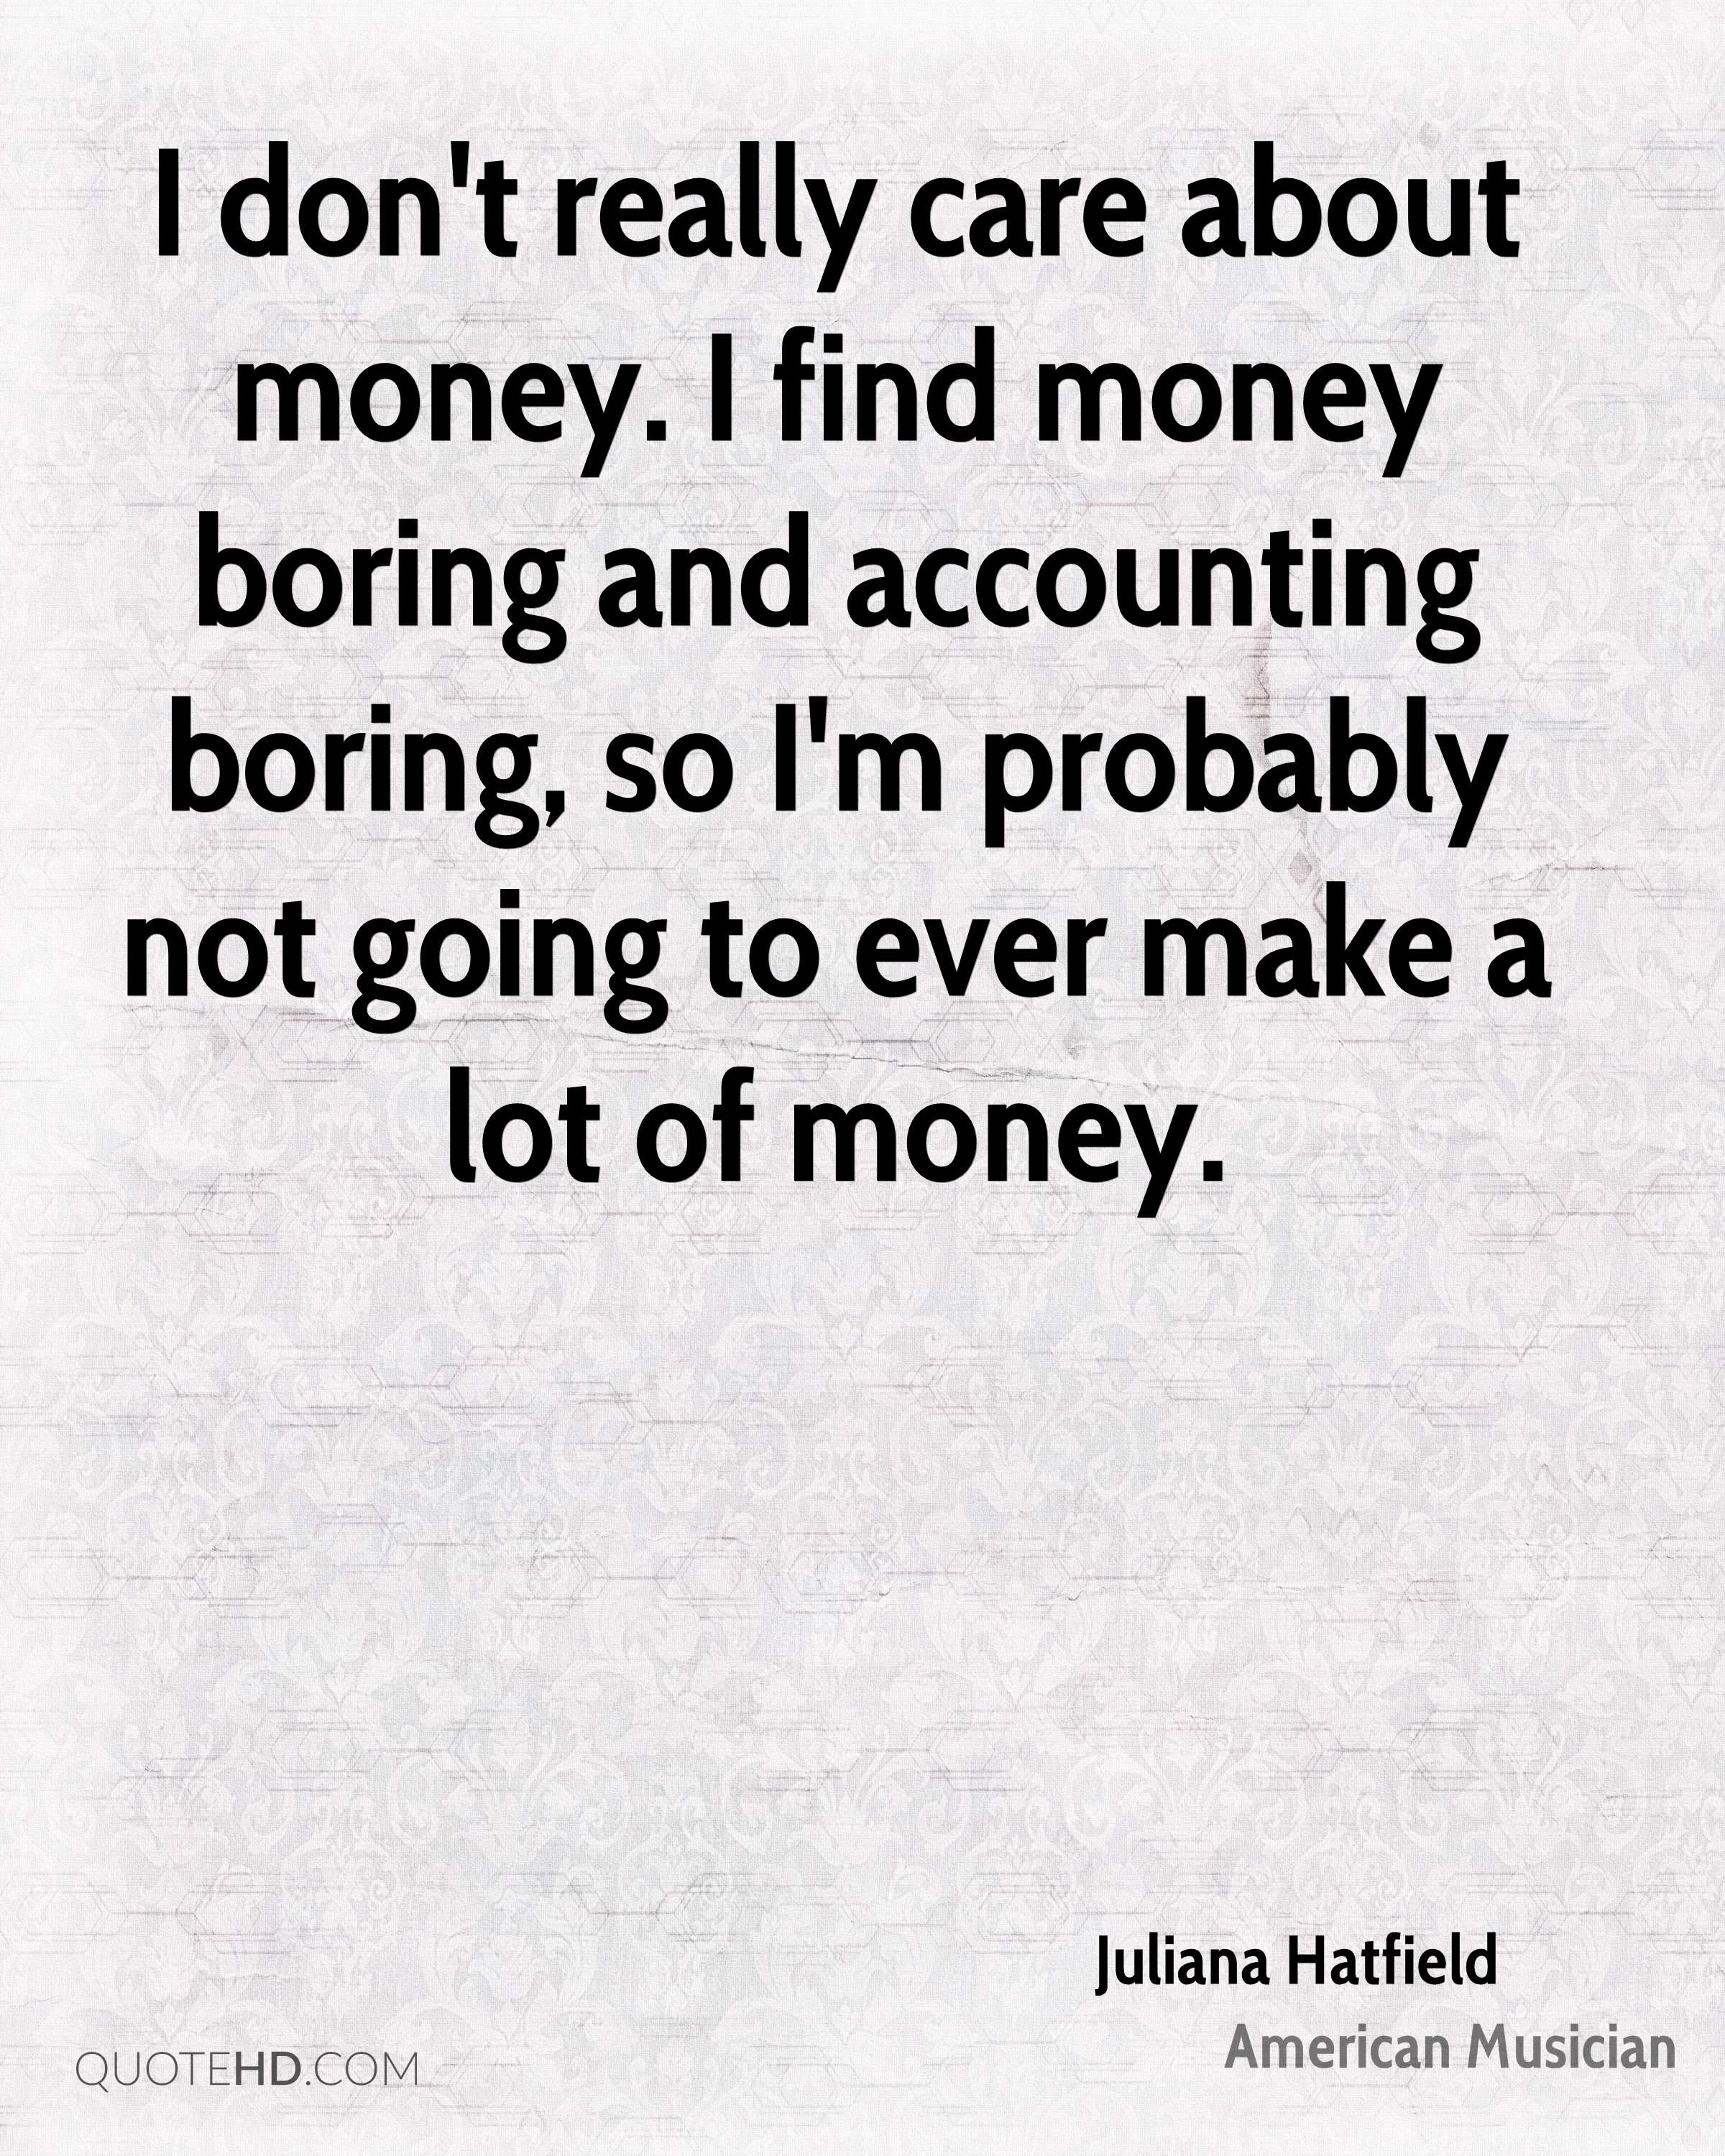 Accounting Quotes Juliana Hatfield Money Quotes  Quotehd